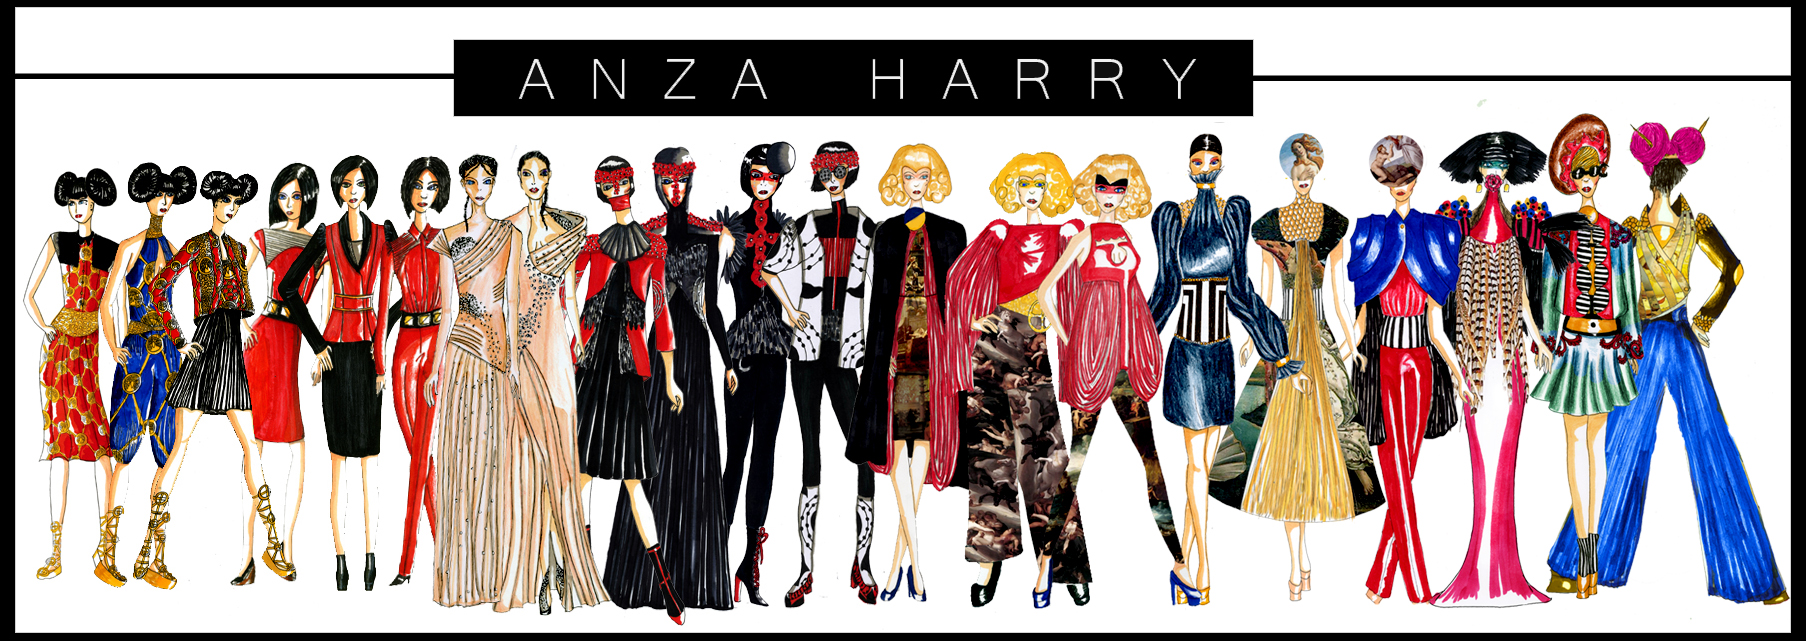 the history of illustration Now onto my illustrations inspired by that of my two chosen people we were asked to use similar subject matter and similar materials eh shepard using this image as inspiration, i chose to create an image of a line up of people, similar to that seen here, however i wanted to give.